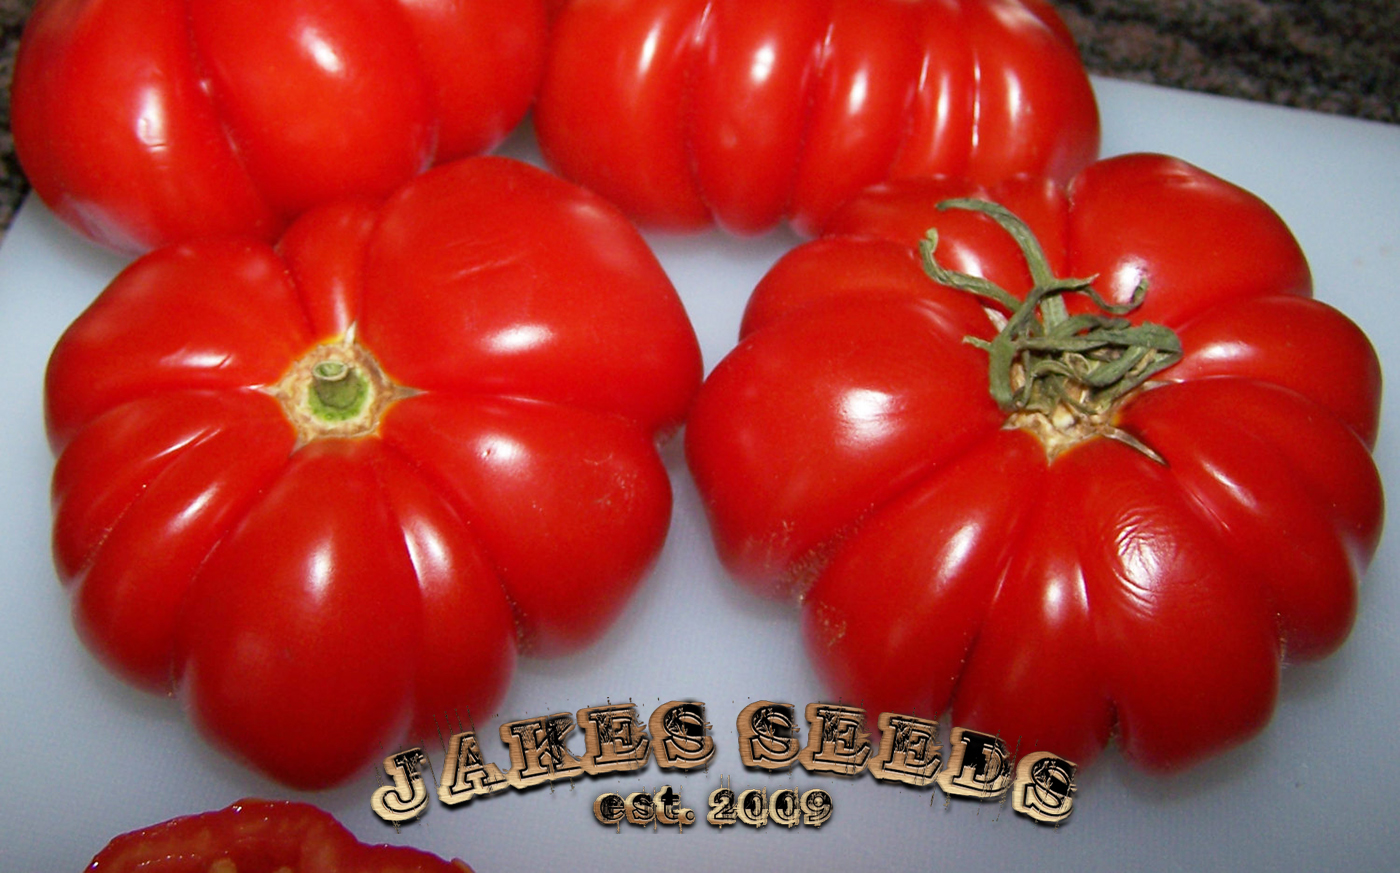 Costoluto Genovese Heirloom Tomato Seeds